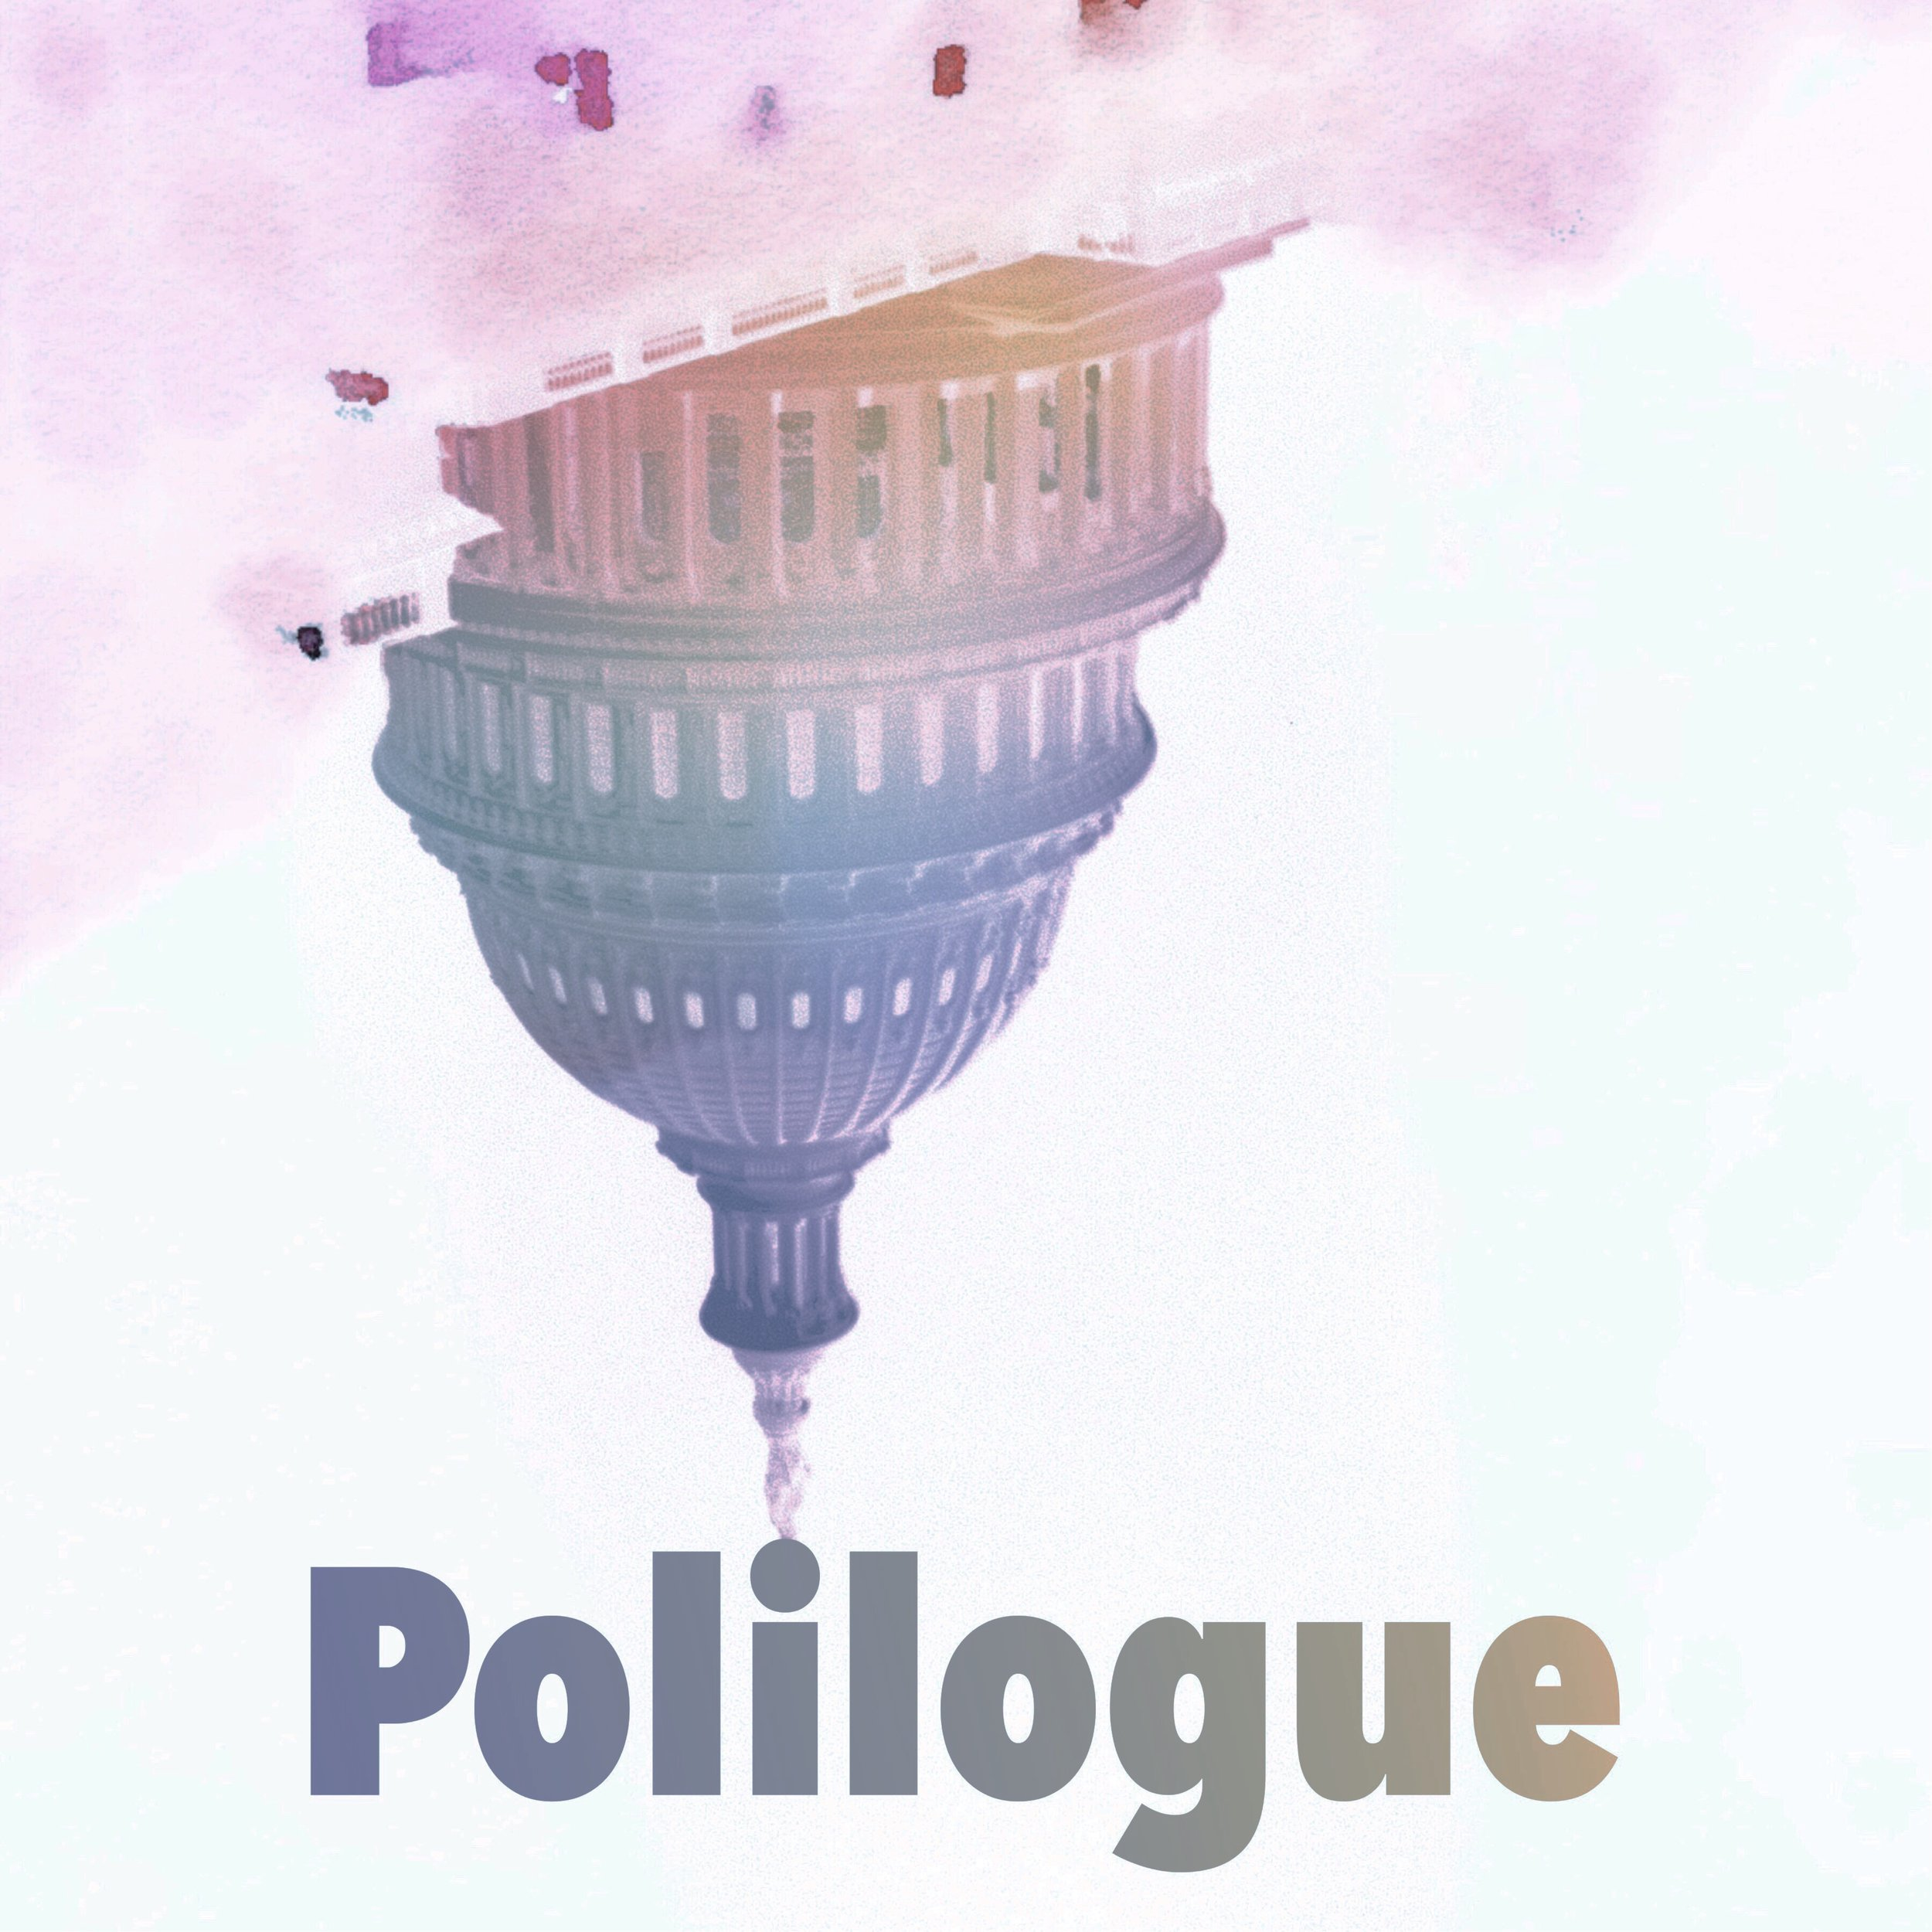 Polilogue Cover Image.jpeg